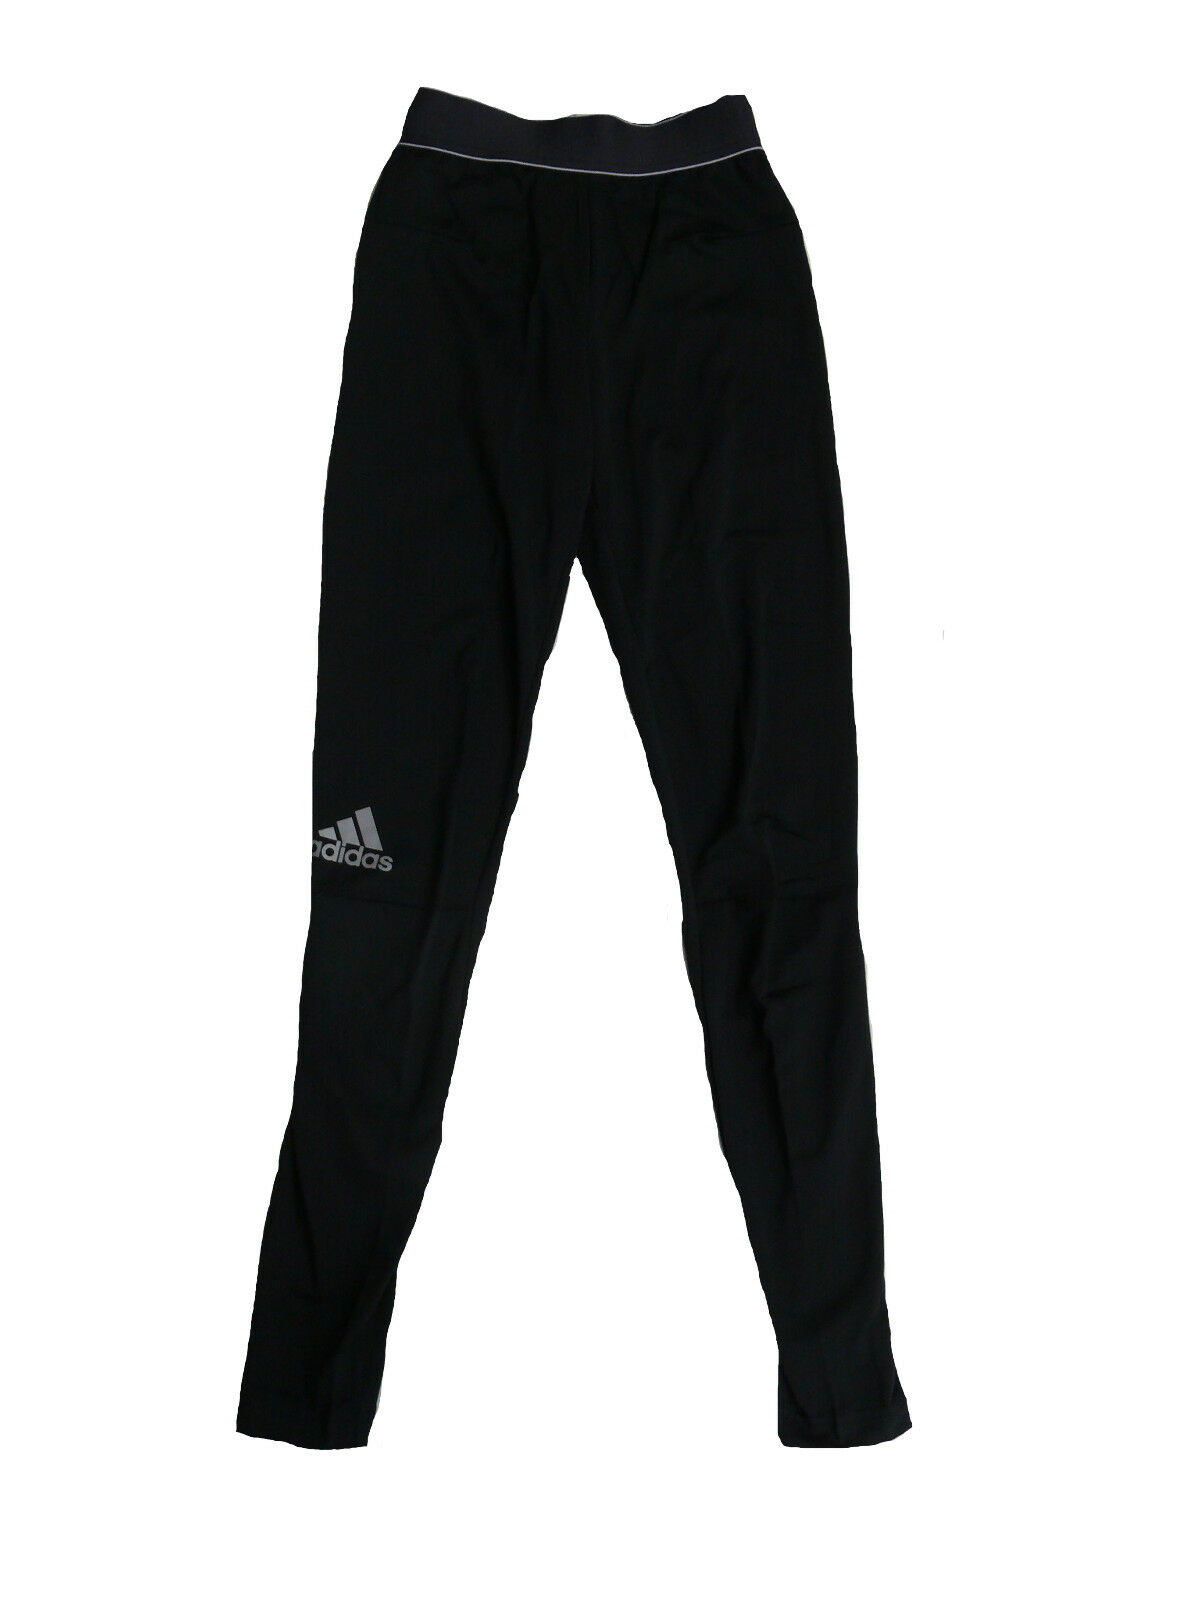 Adidas Hombre Xperior Ajustado Pantalones Running Climawarm sizeS S-M  (5)  clearance up to 70%